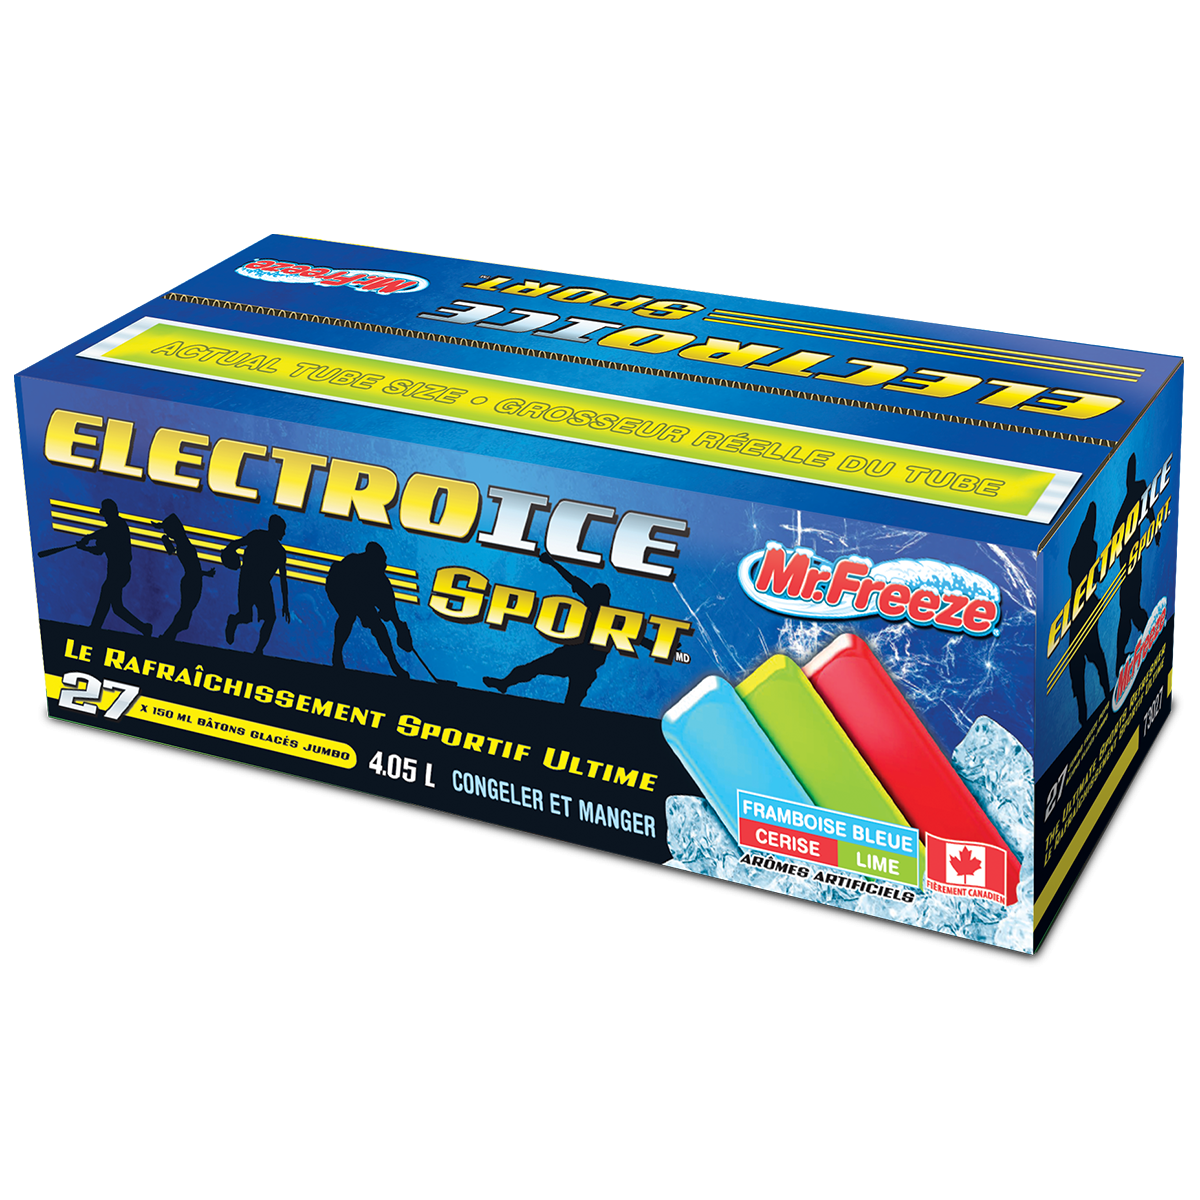 Mr. Freeze Electroice Sport